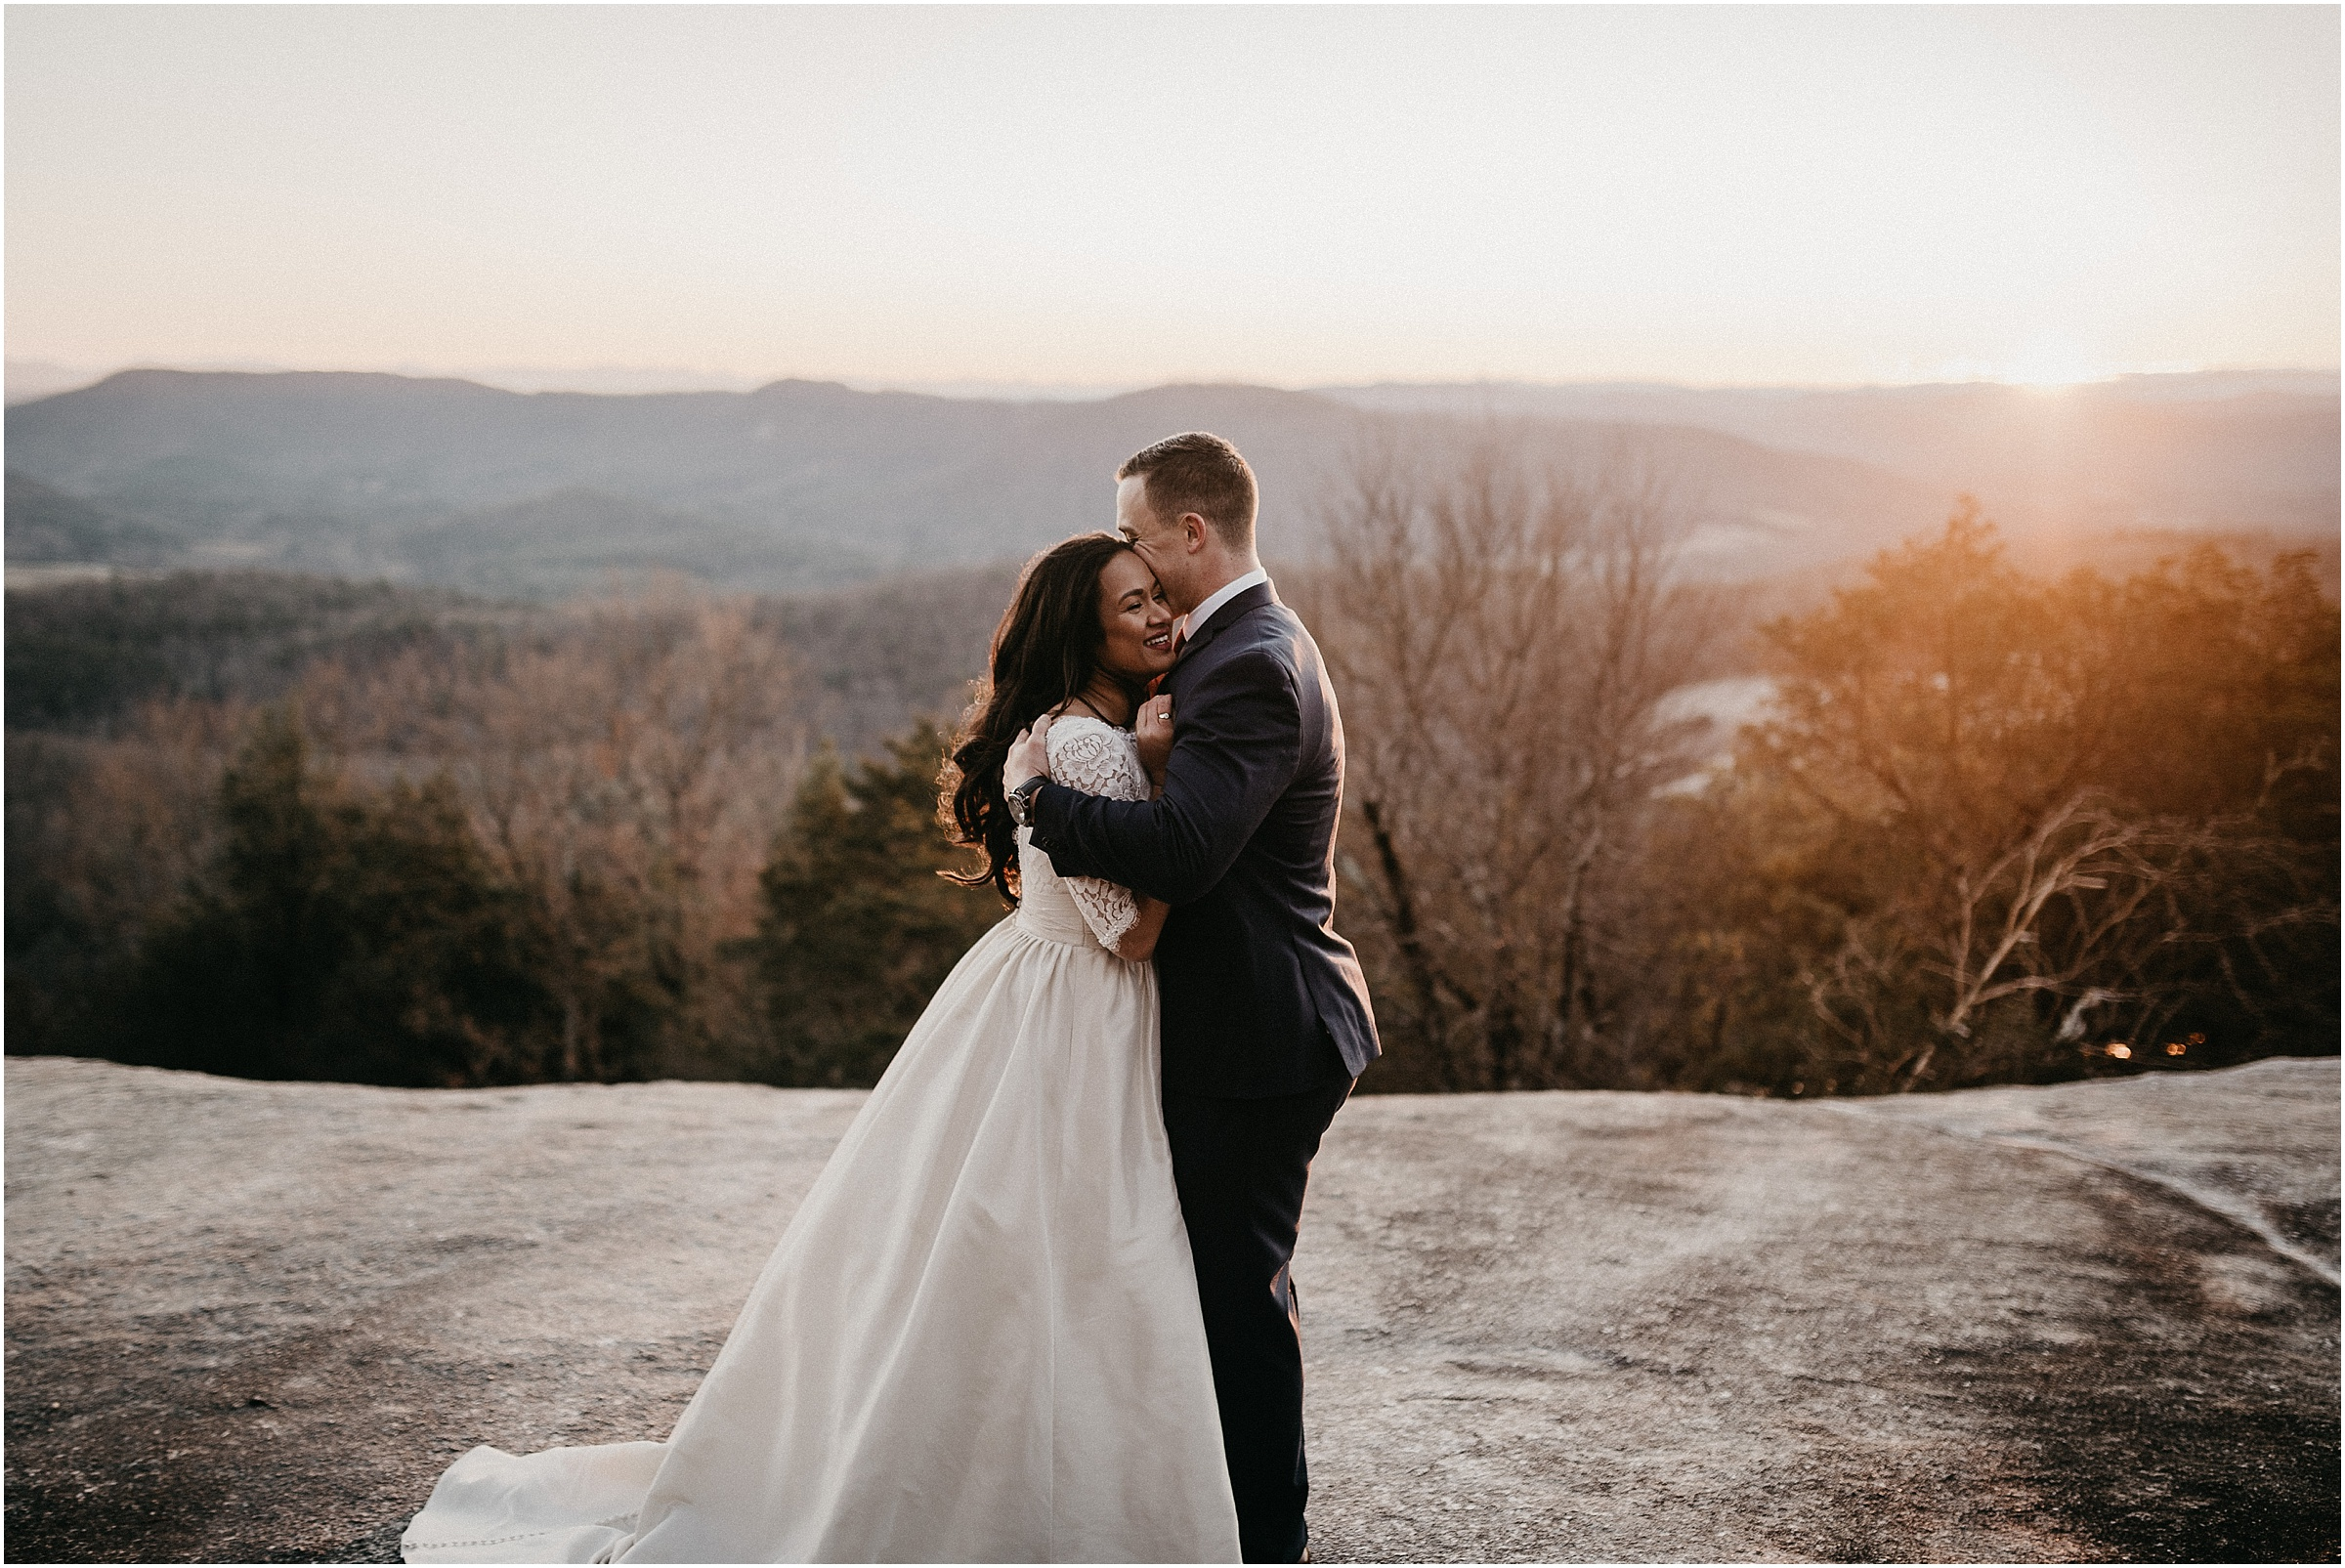 Stone_Mountain_NC_Elopement_56.JPG